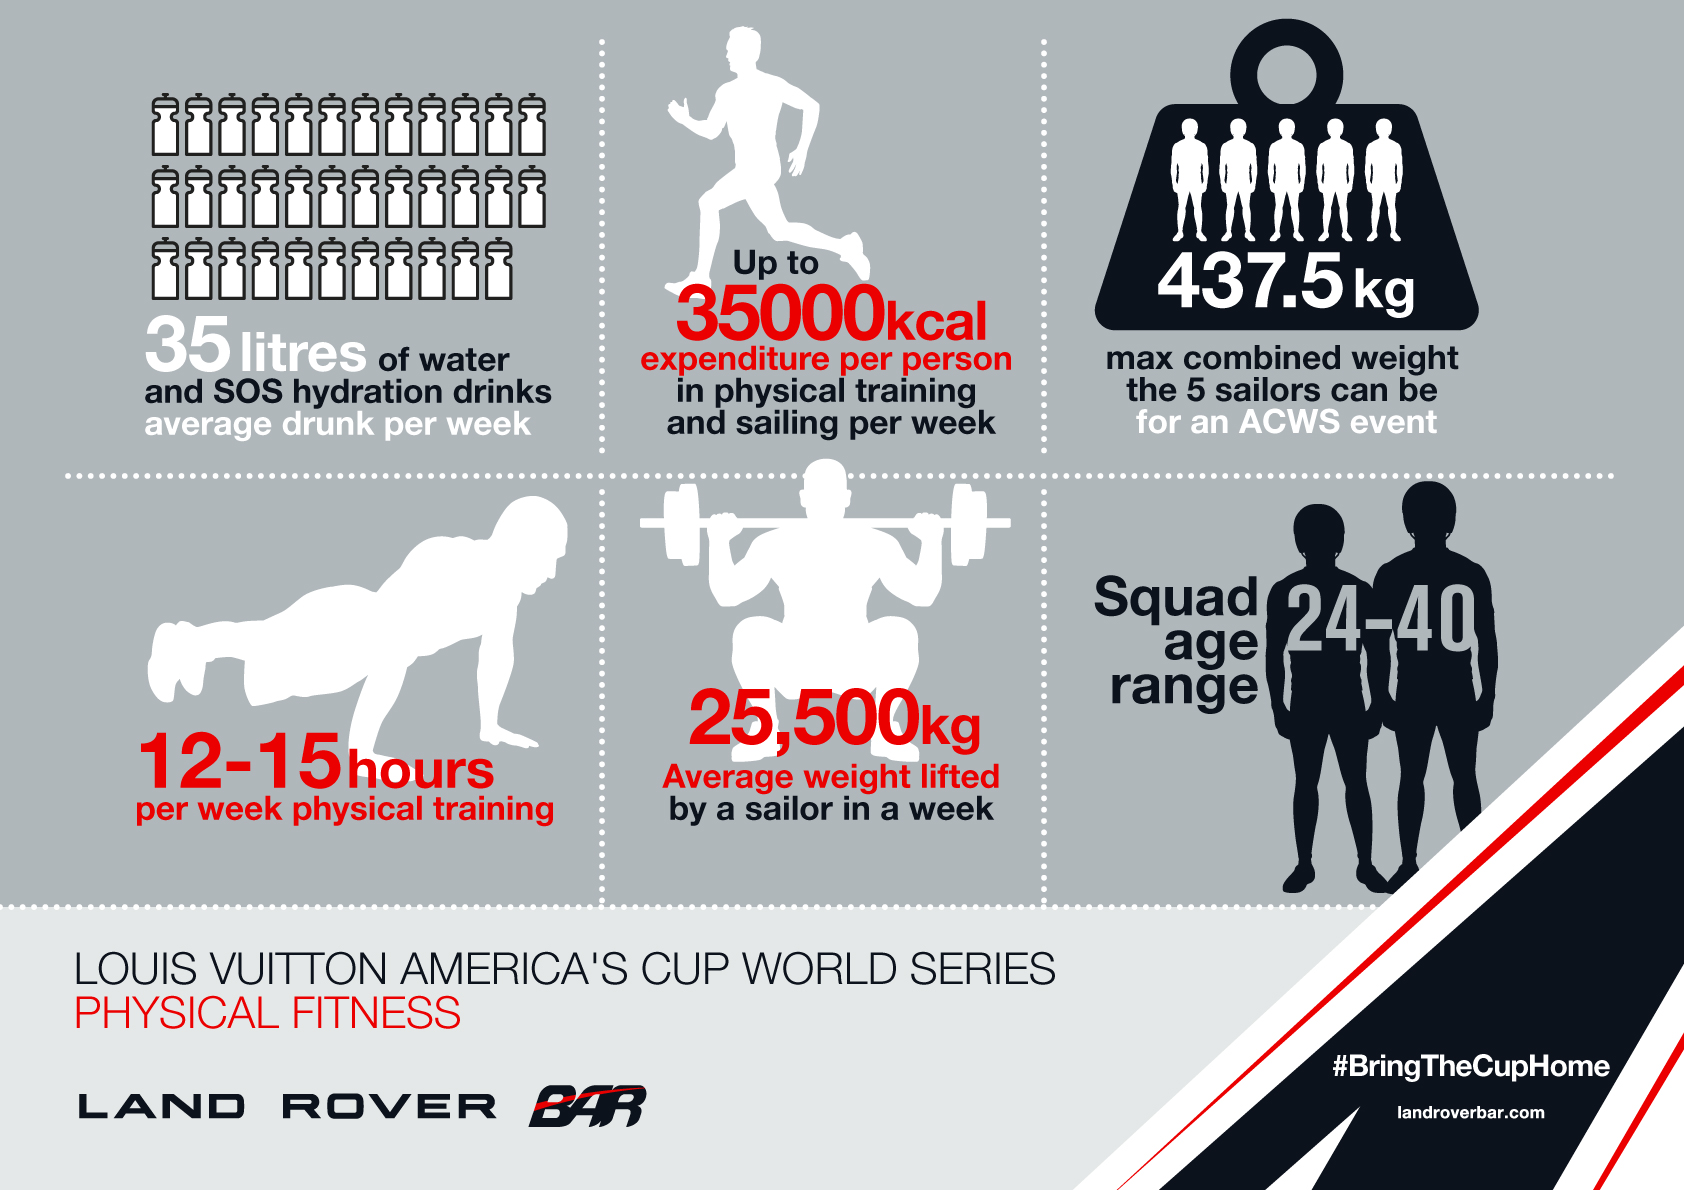 Land Rover BAR fitness stats infograpic.jpg